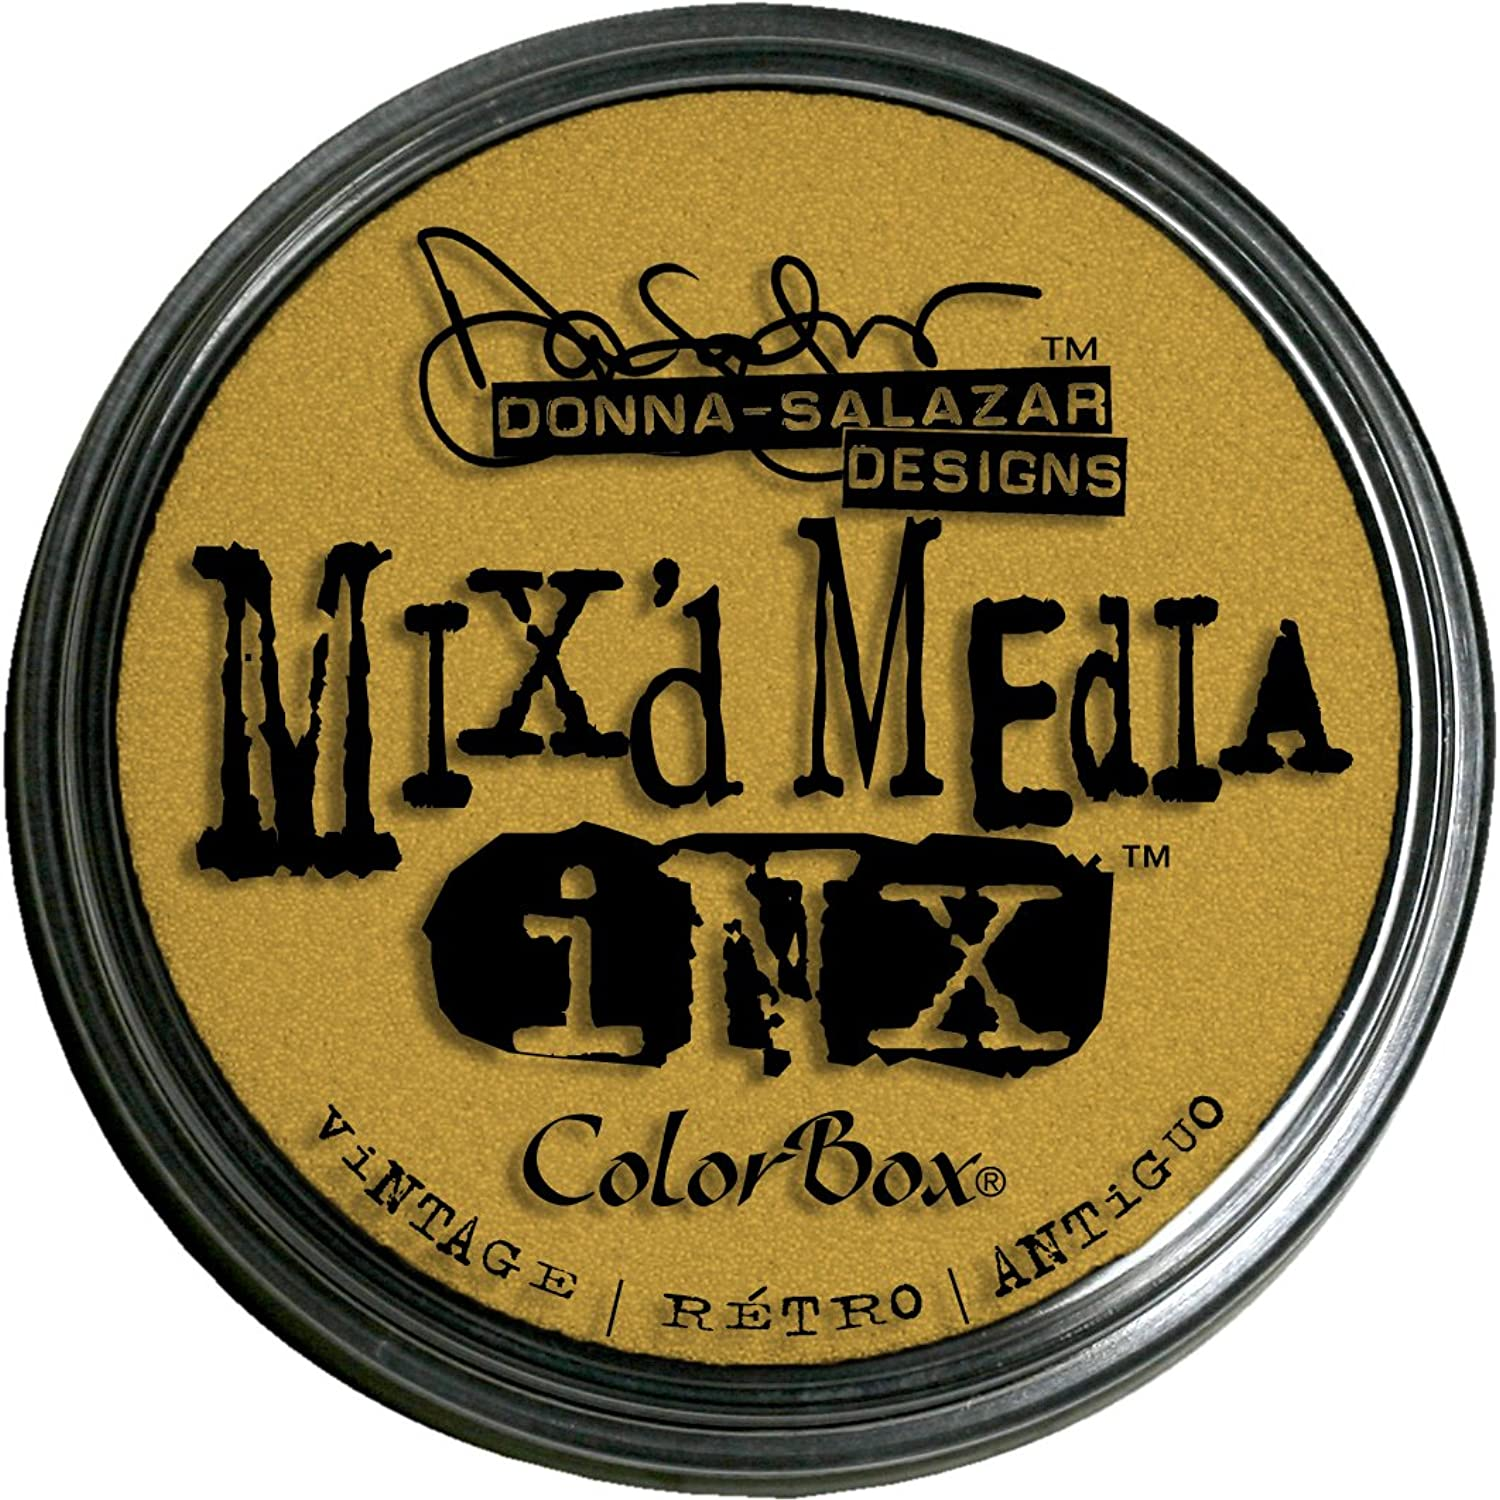 Mix'd Media Inx by women Salazar Rubber Stamp Ink Pads, Vintage color